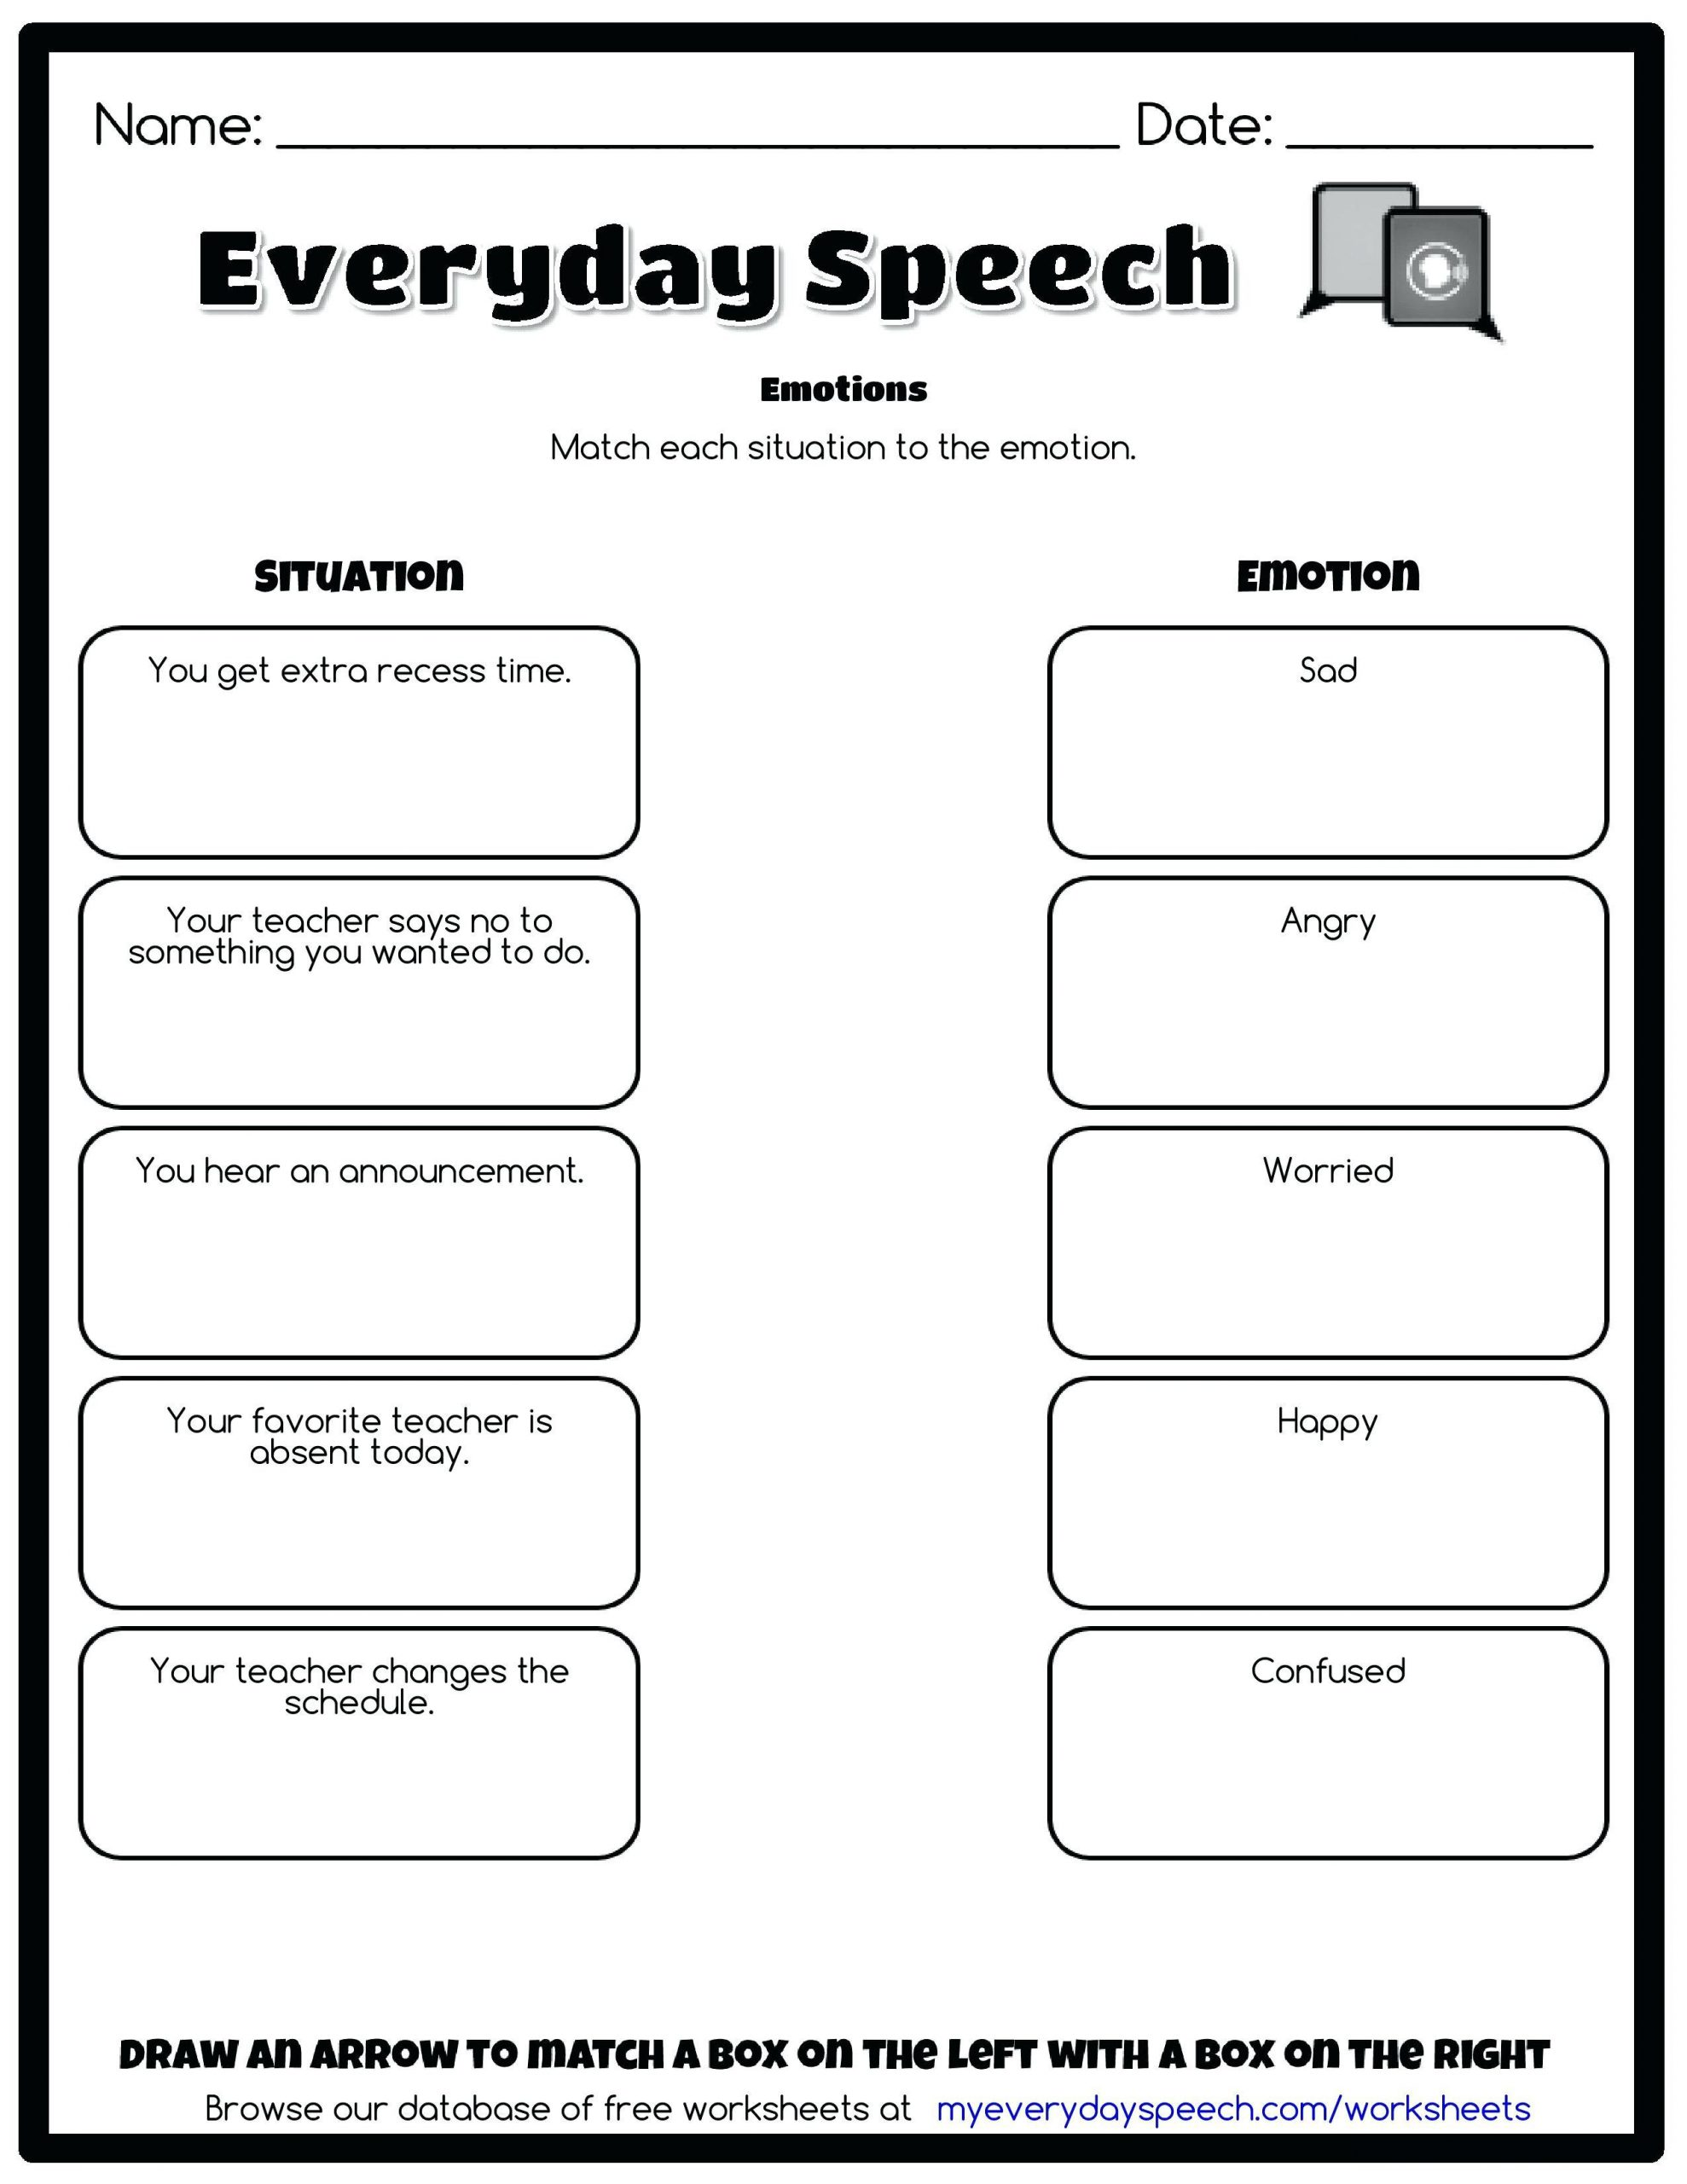 Impulse Control Worksheets For Teens Template Library